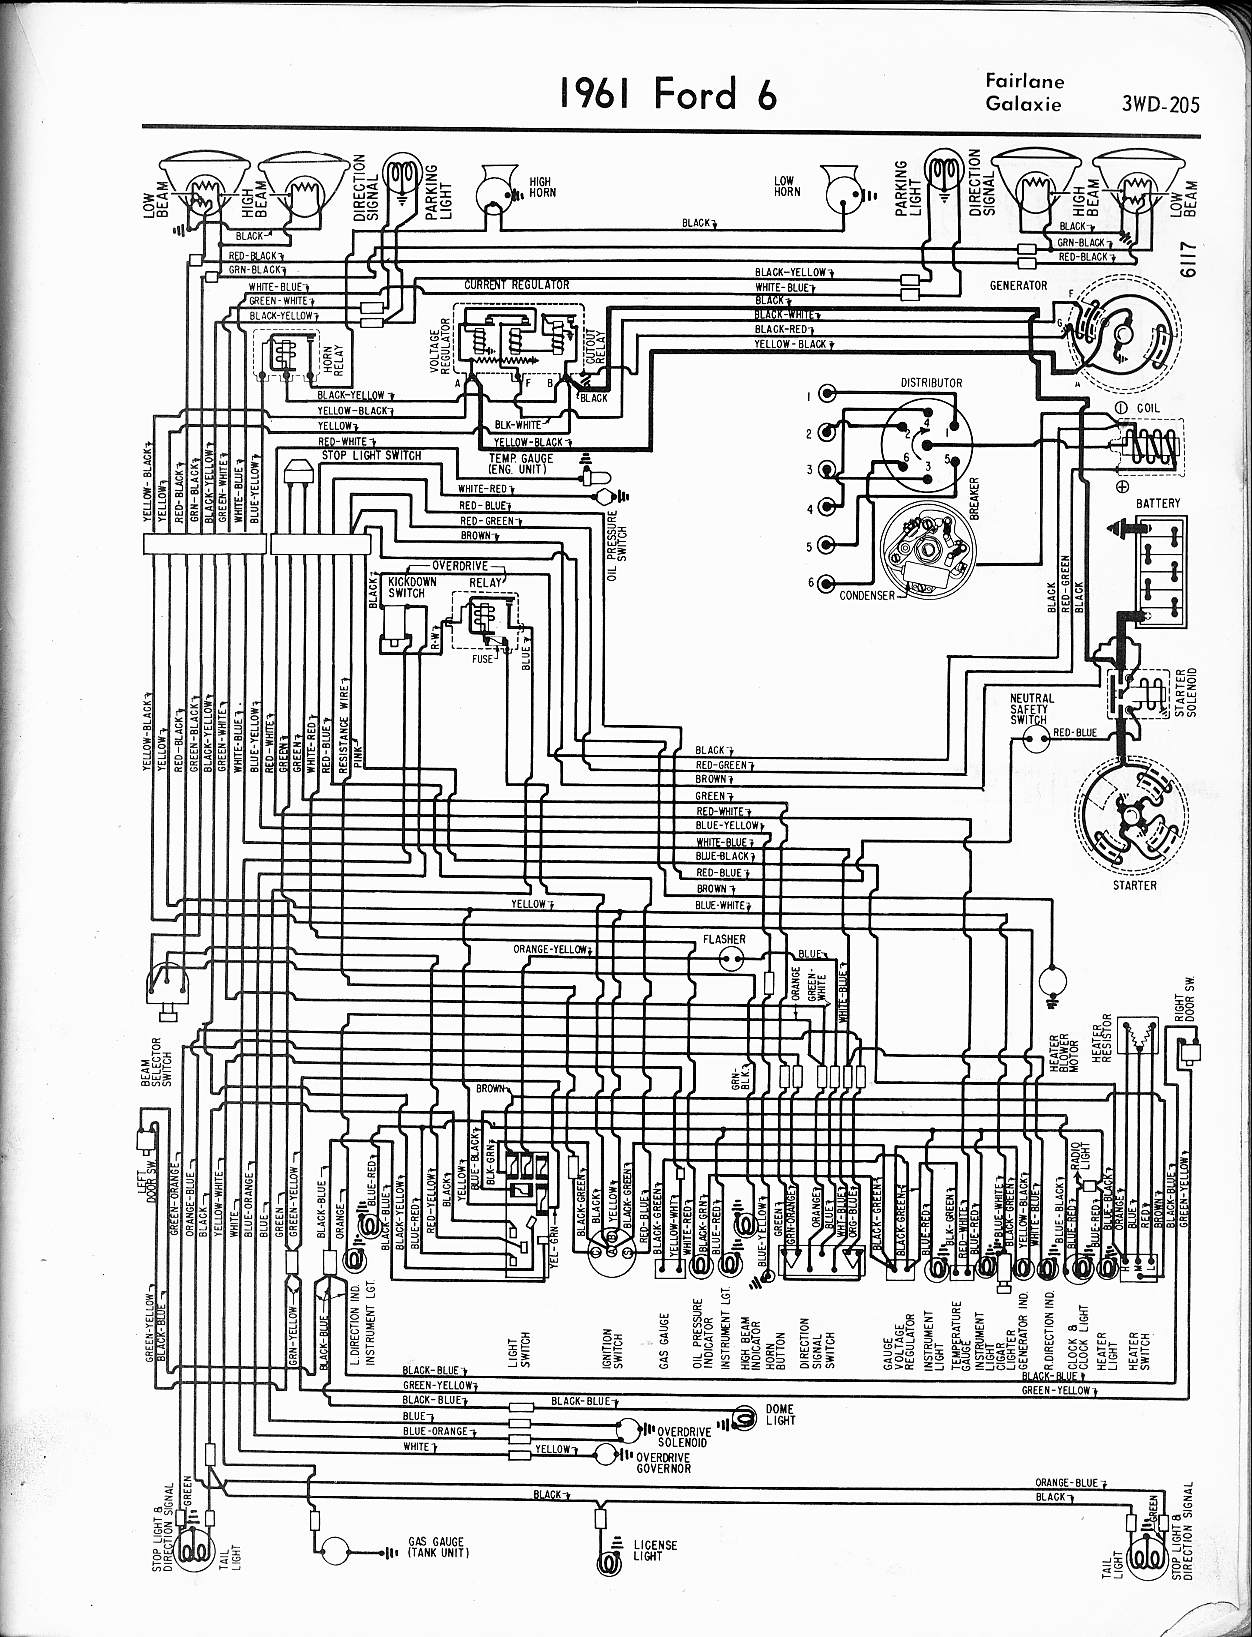 57 65 Ford Wiring Diagrams 1965 Galaxie Diagram Fairlane